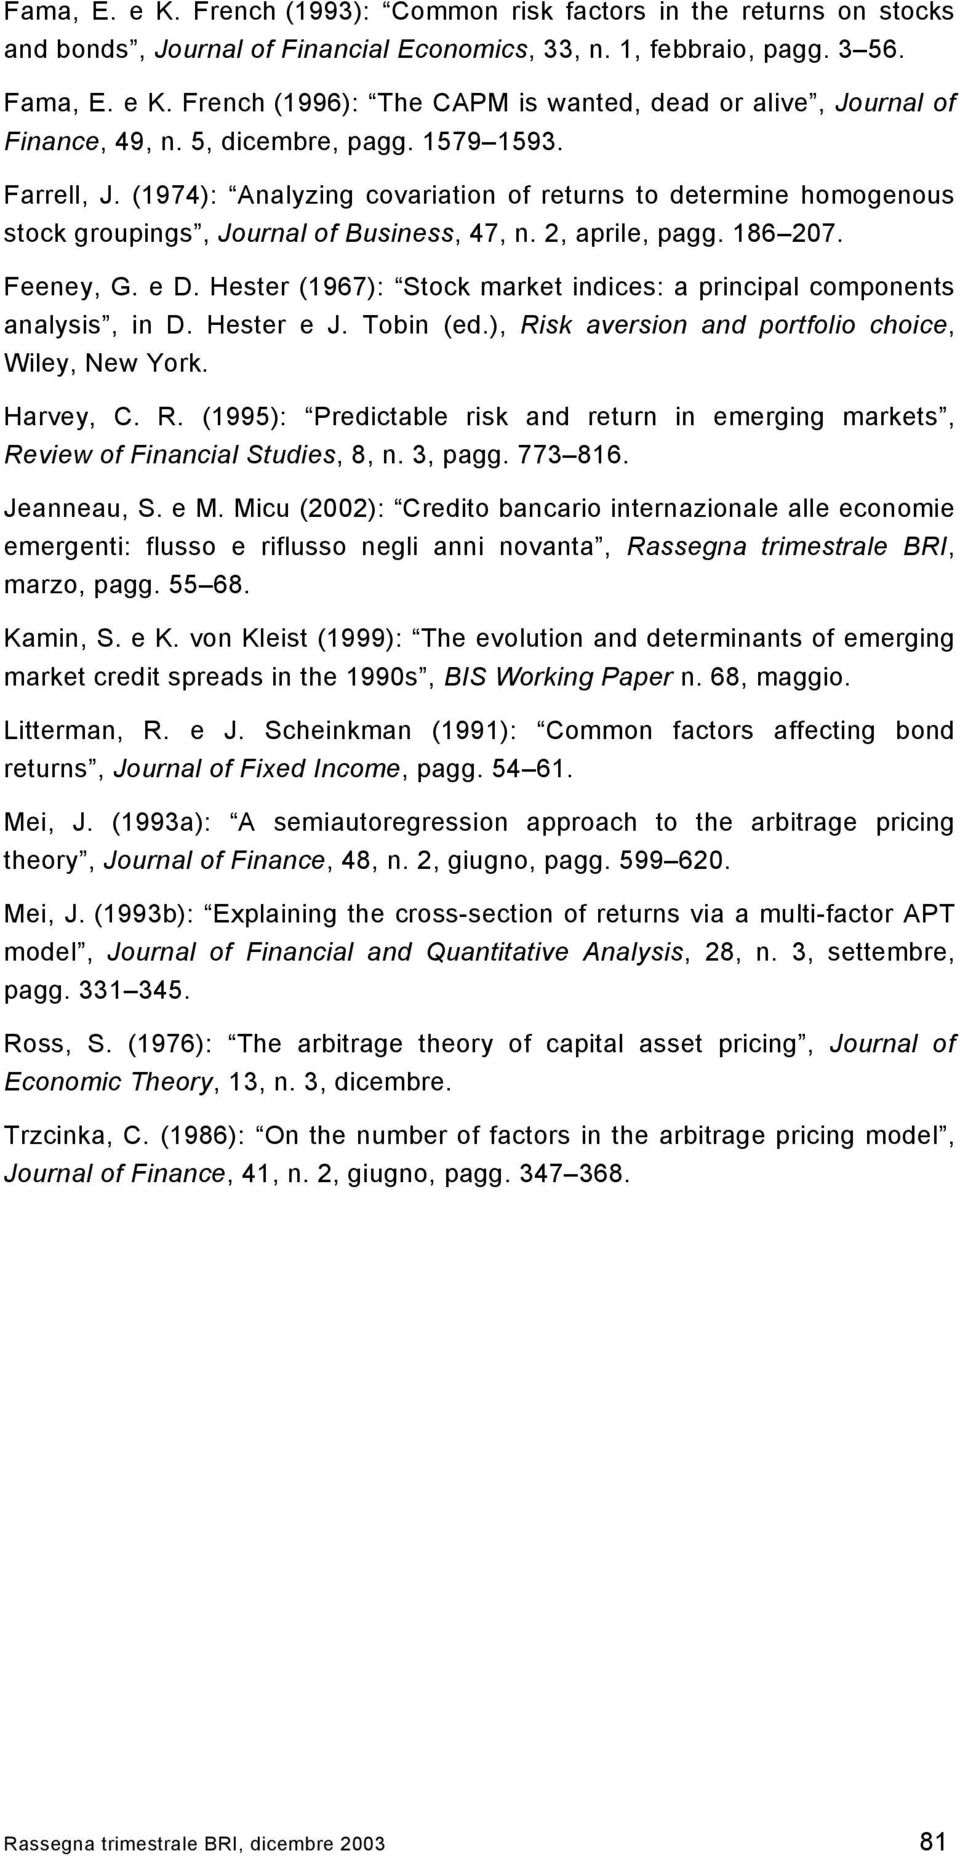 Hester (1967): Stock market indices: a principal components analysis, in D. Hester e J. Tobin (ed.), Risk aversion and portfolio choice, Wiley, New York. Harvey, C. R. (1995): Predictable risk and return in emerging markets, Review of Financial Studies, 8, n.